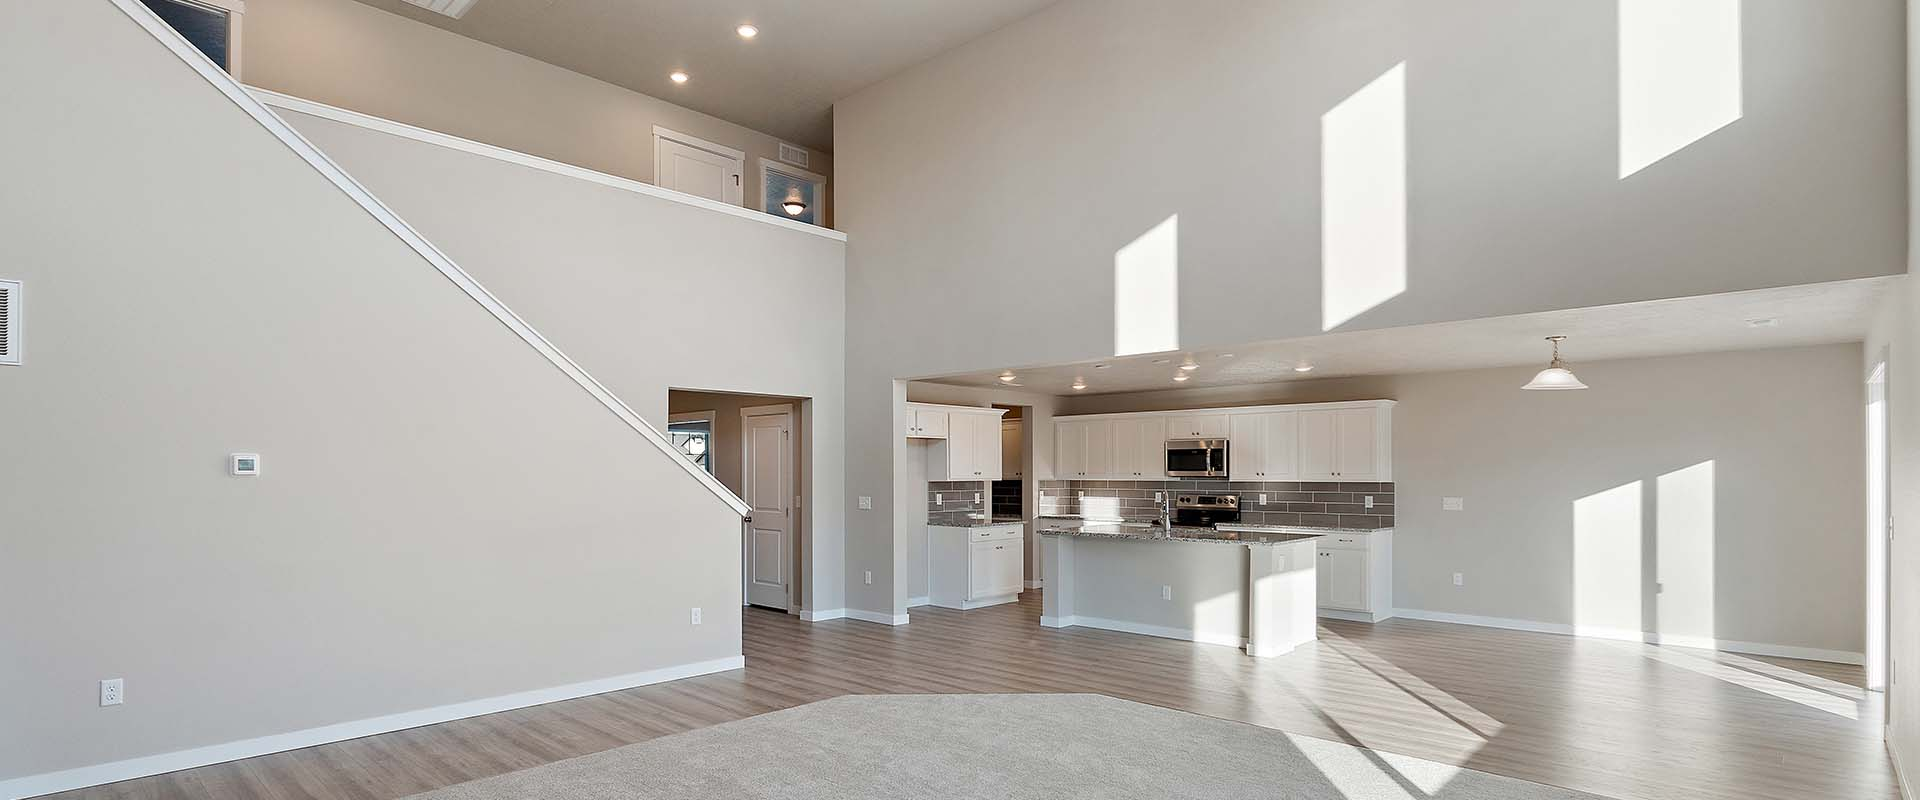 Topaz-Great-Room1-new-homes-boise-idaho-hubble-homes.jpg